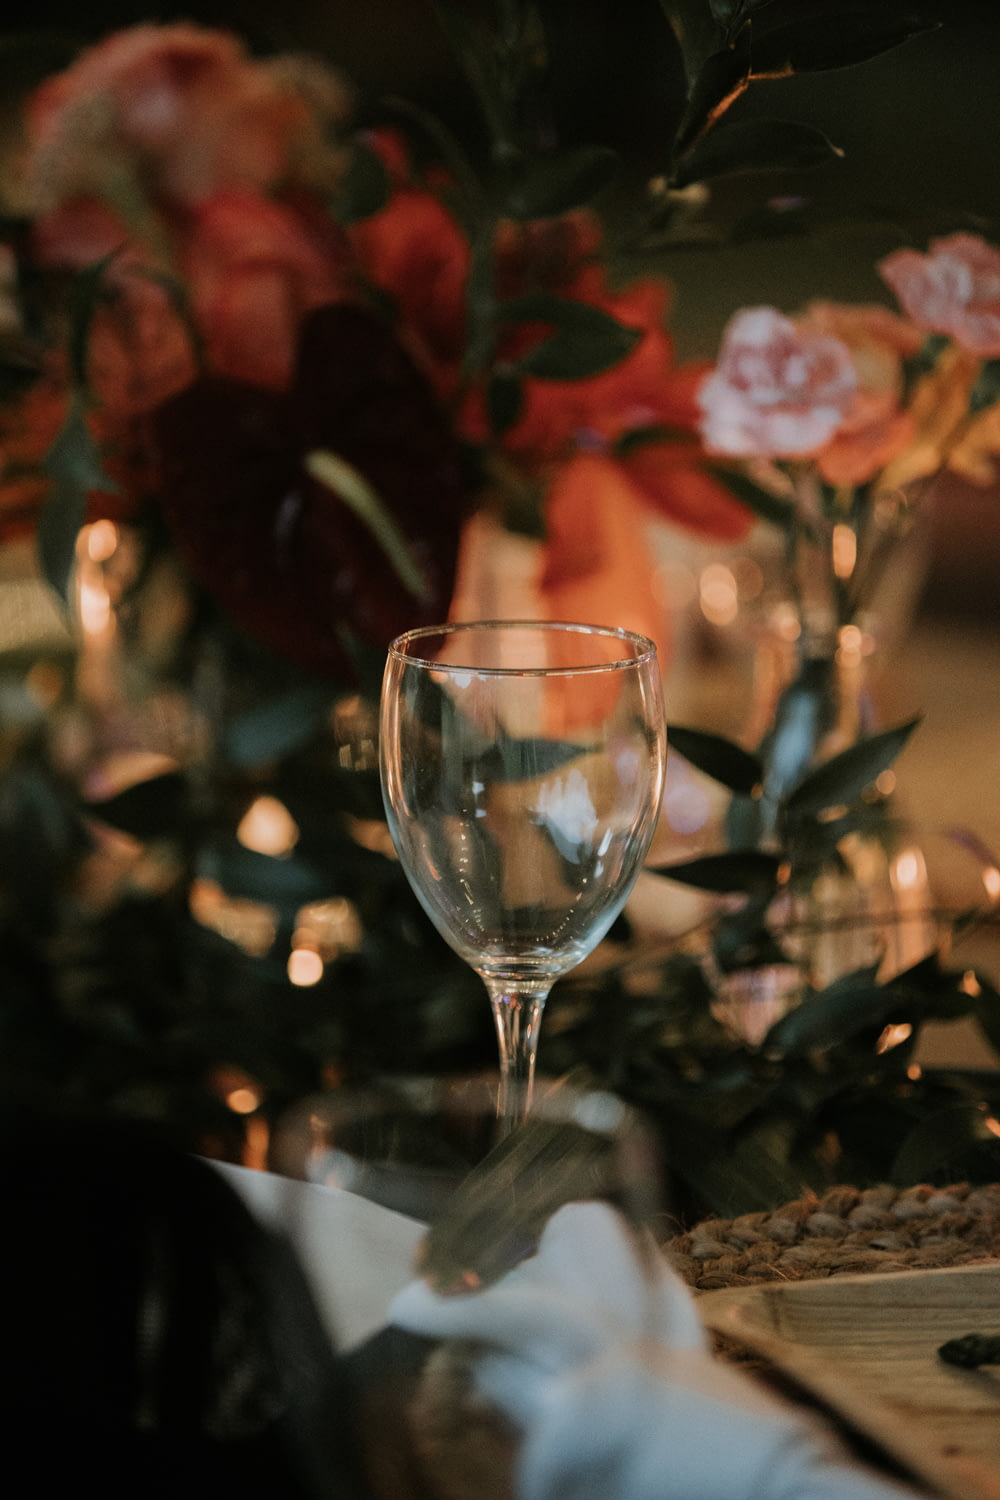 clear wine glass on table